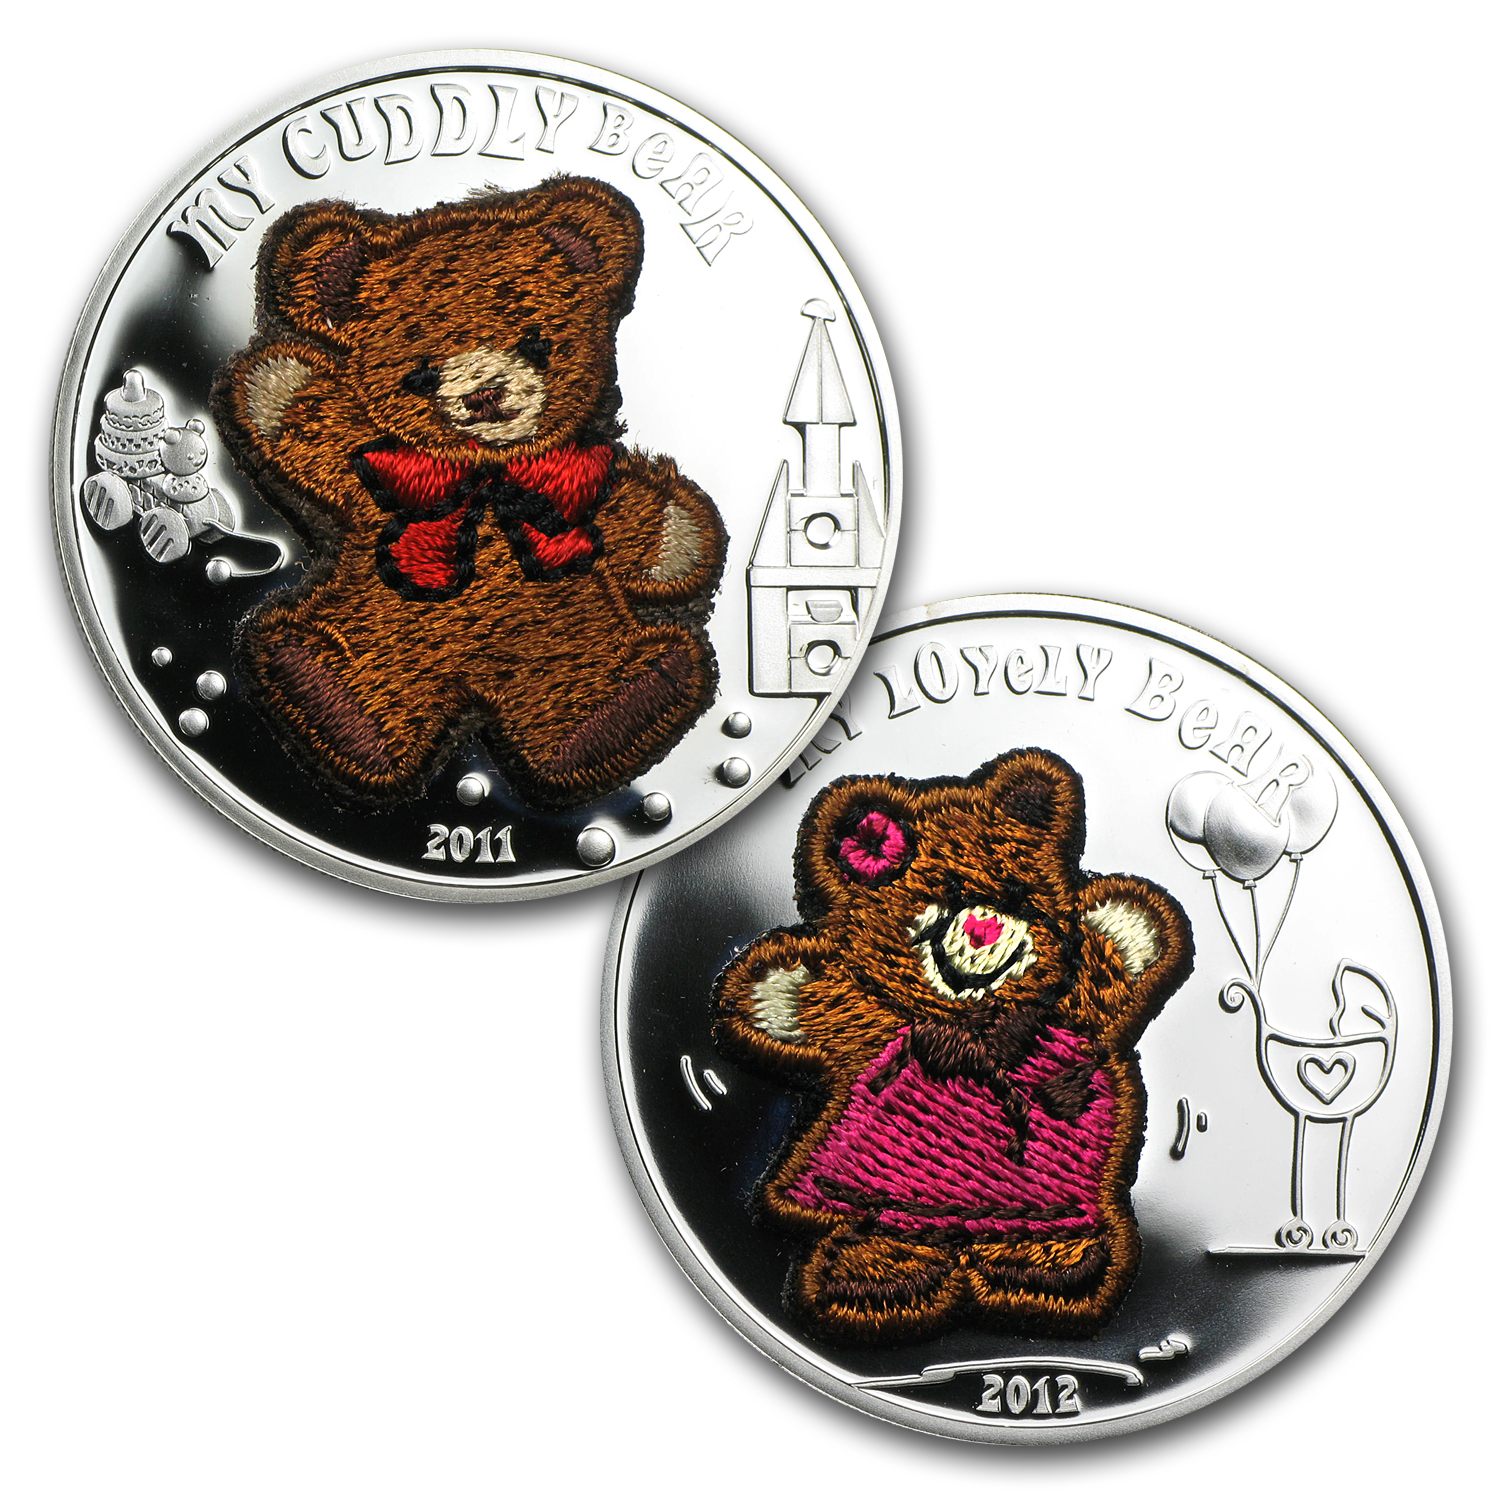 Palau Proof Silver $5 My Bears - Lovely and Cuddly - 2 Coin Set